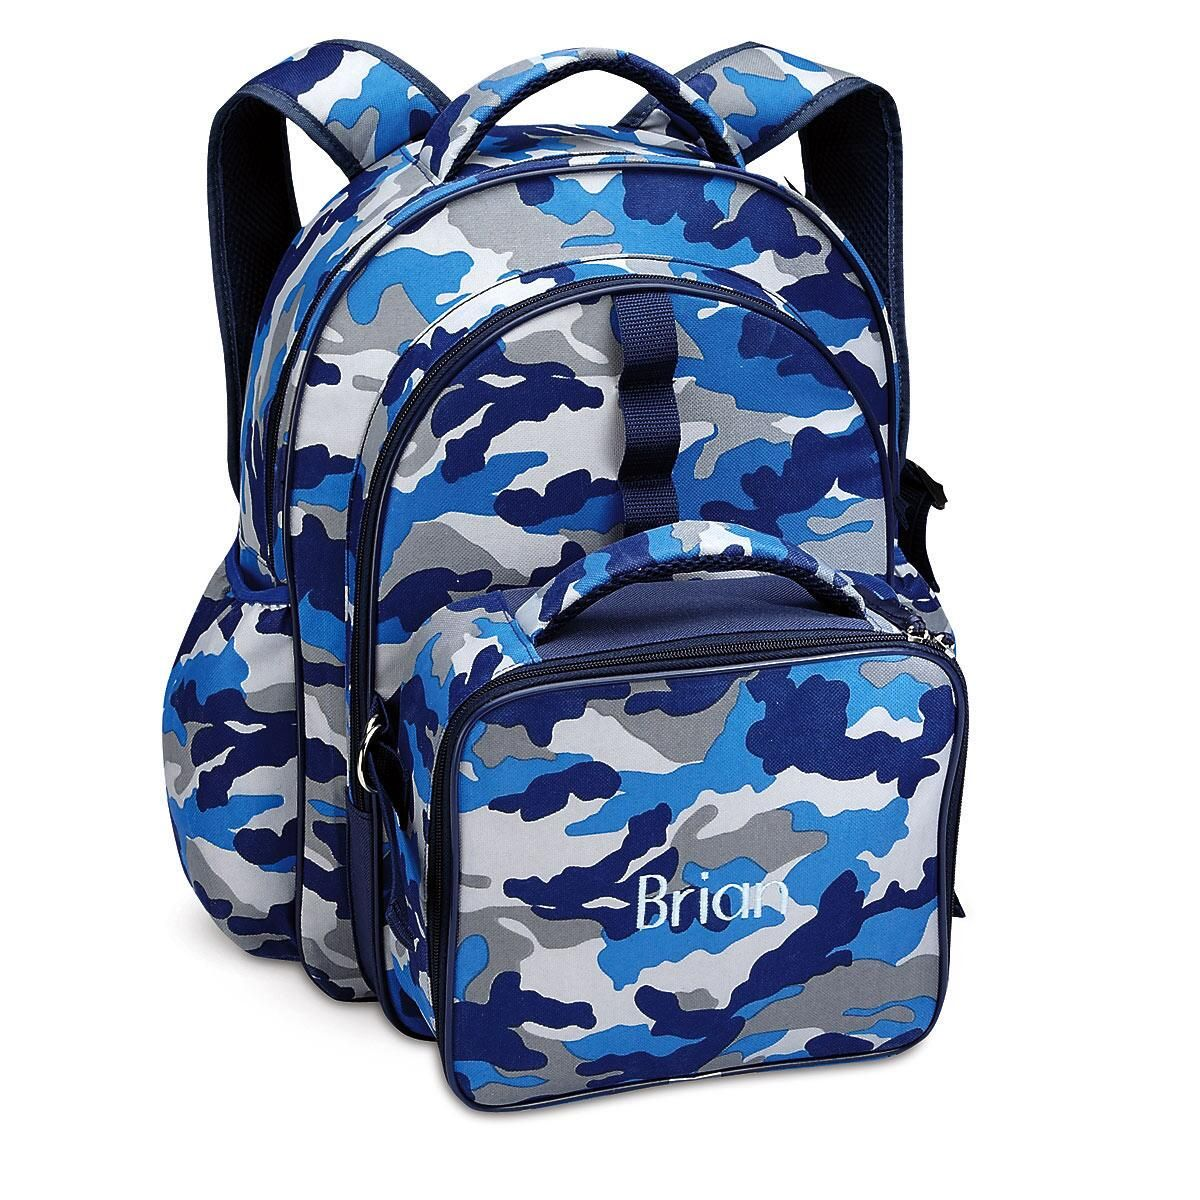 Personalized Kids School Bags & Back to School Bags | Lillian Vernon